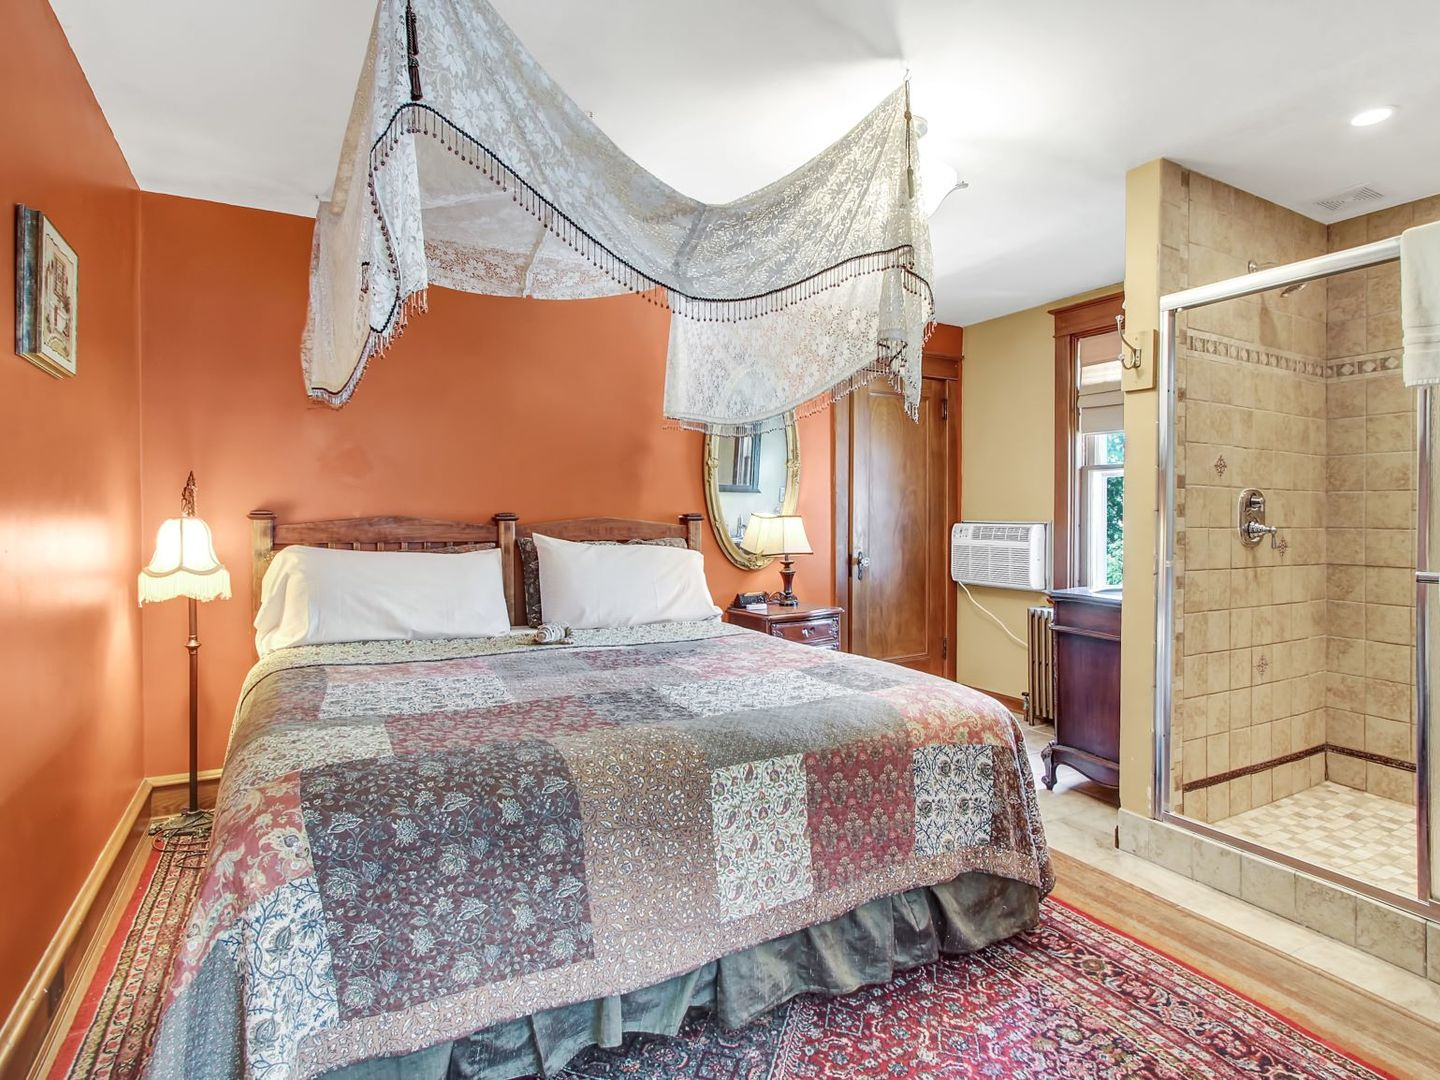 A bedroom with a large bed in a room at Australian Walkabout Inn Bed & Breakfast.